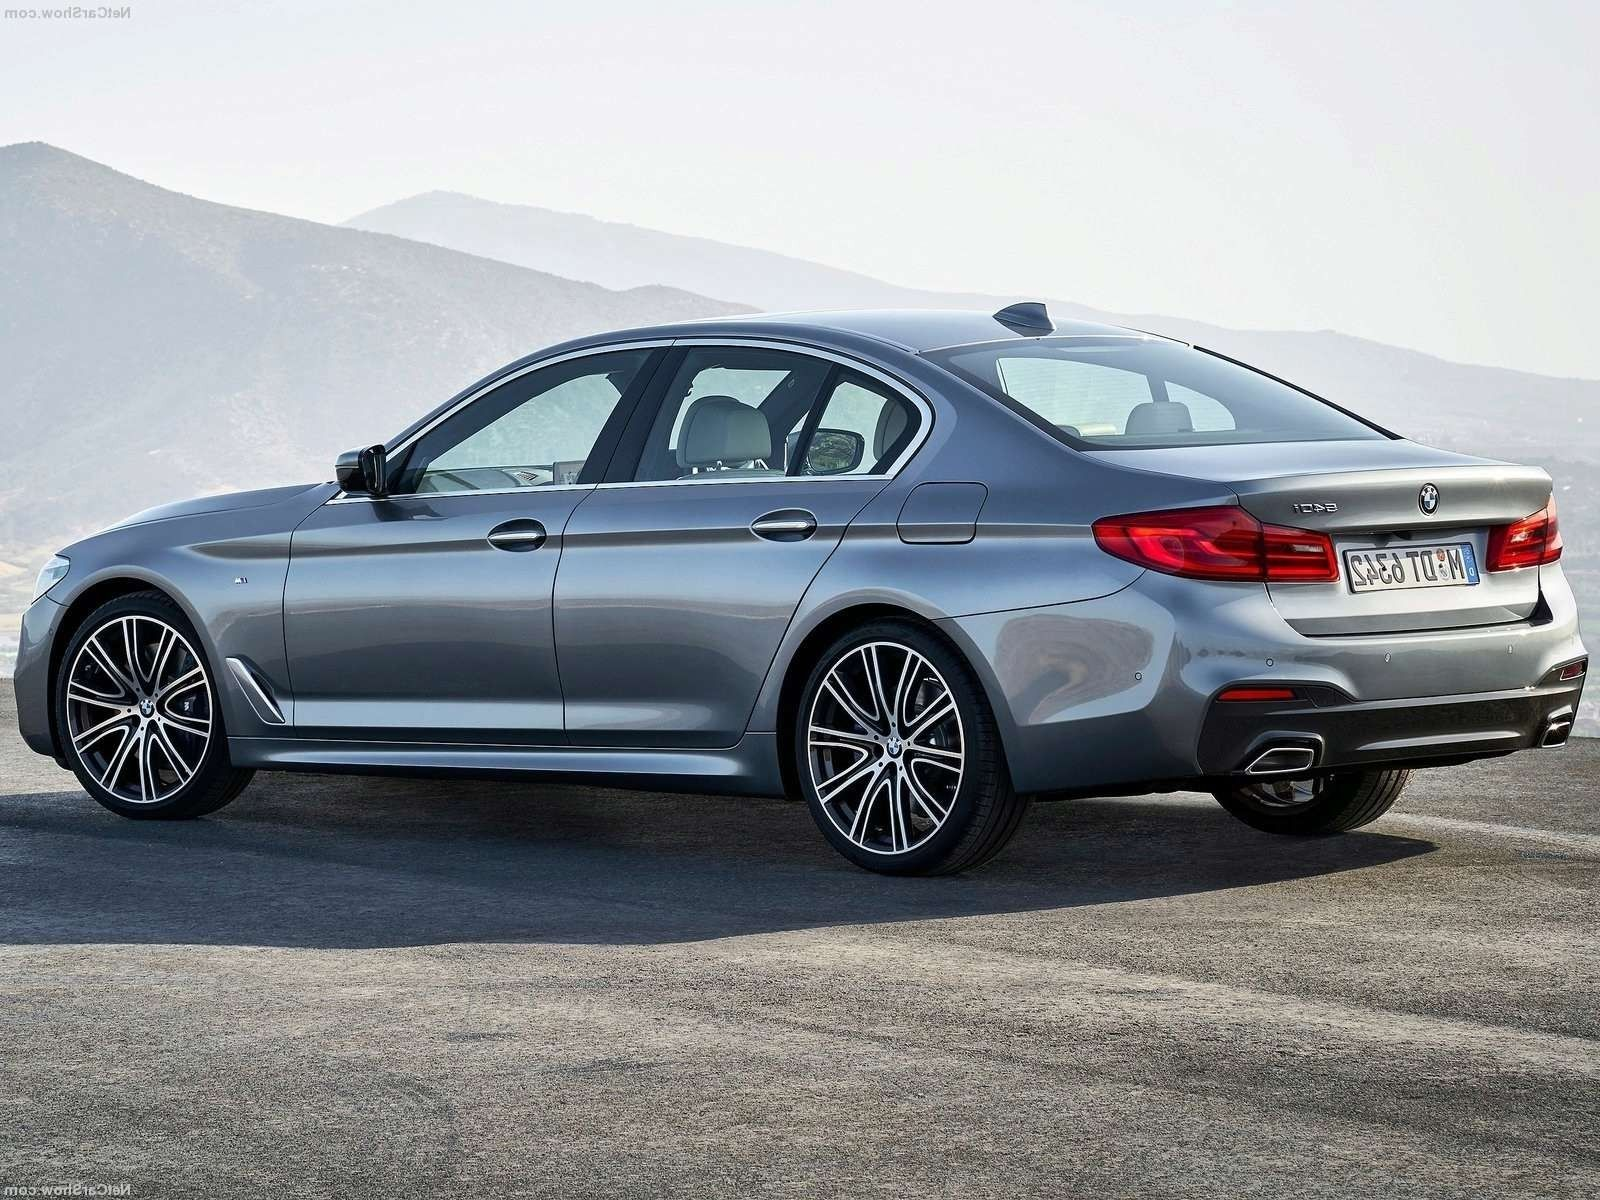 2019 Bmw 5 Series Interior Exterior And Review With Images